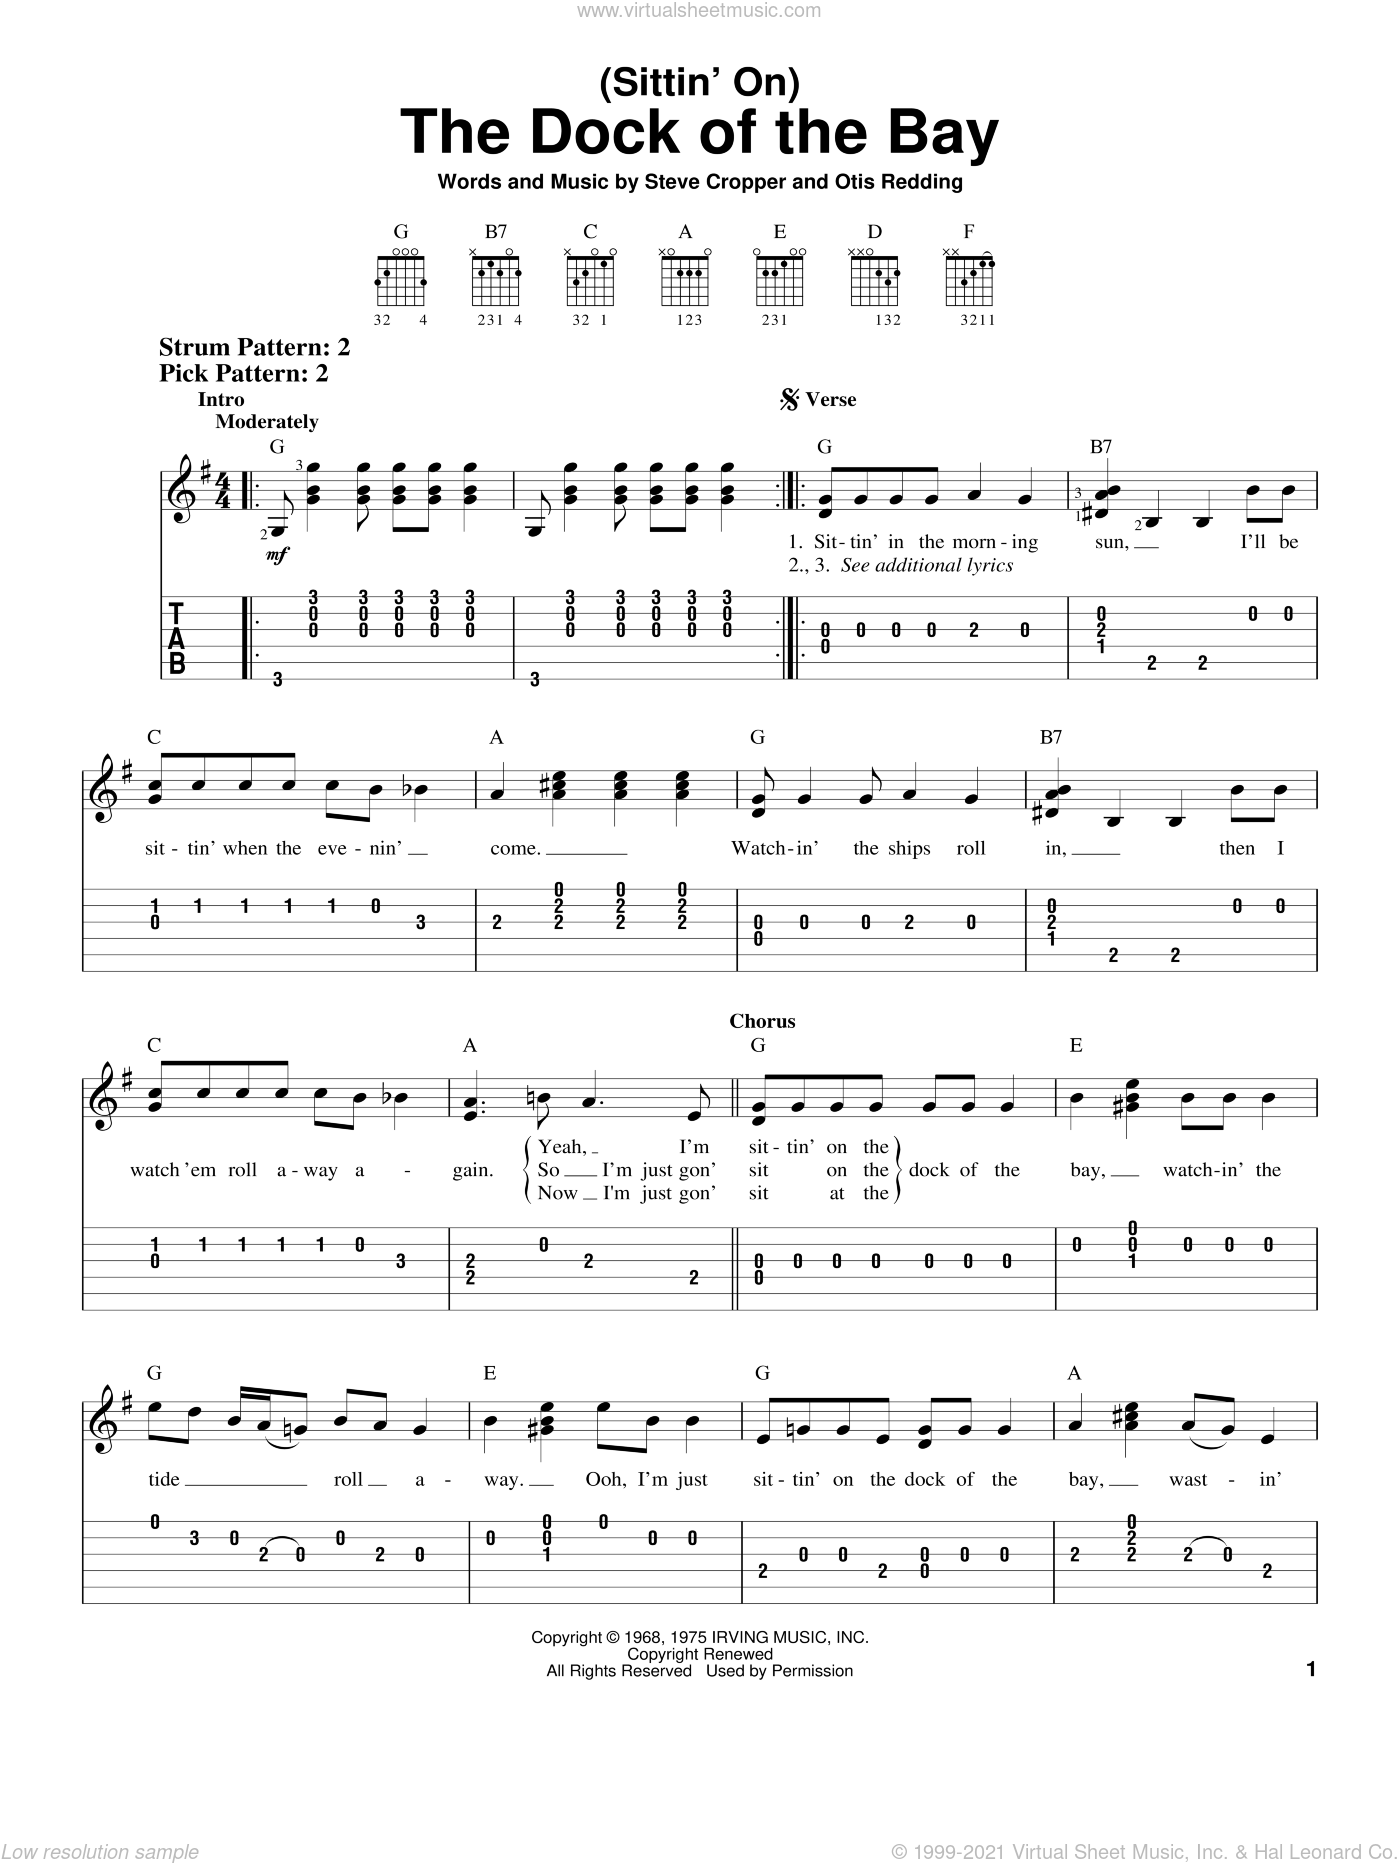 (Sittin' On) The Dock Of The Bay sheet music for guitar solo (easy tablature) by Otis Redding and Steve Cropper, easy guitar (easy tablature). Score Image Preview.